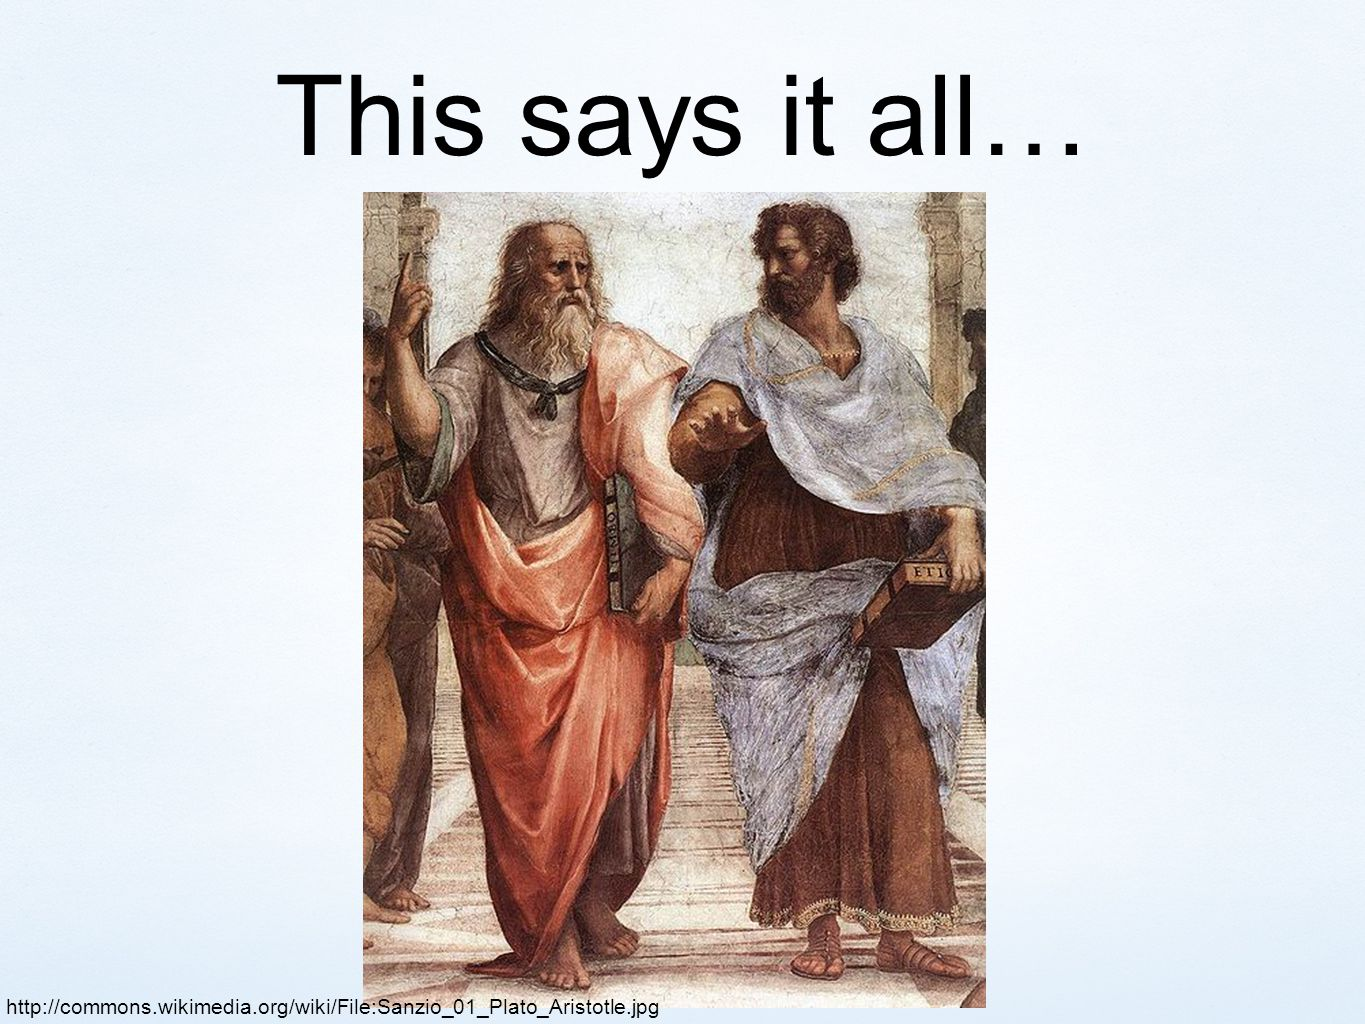 This says it all… http://commons.wikimedia.org/wiki/File:Sanzio_01_Plato_Aristotle.jpg